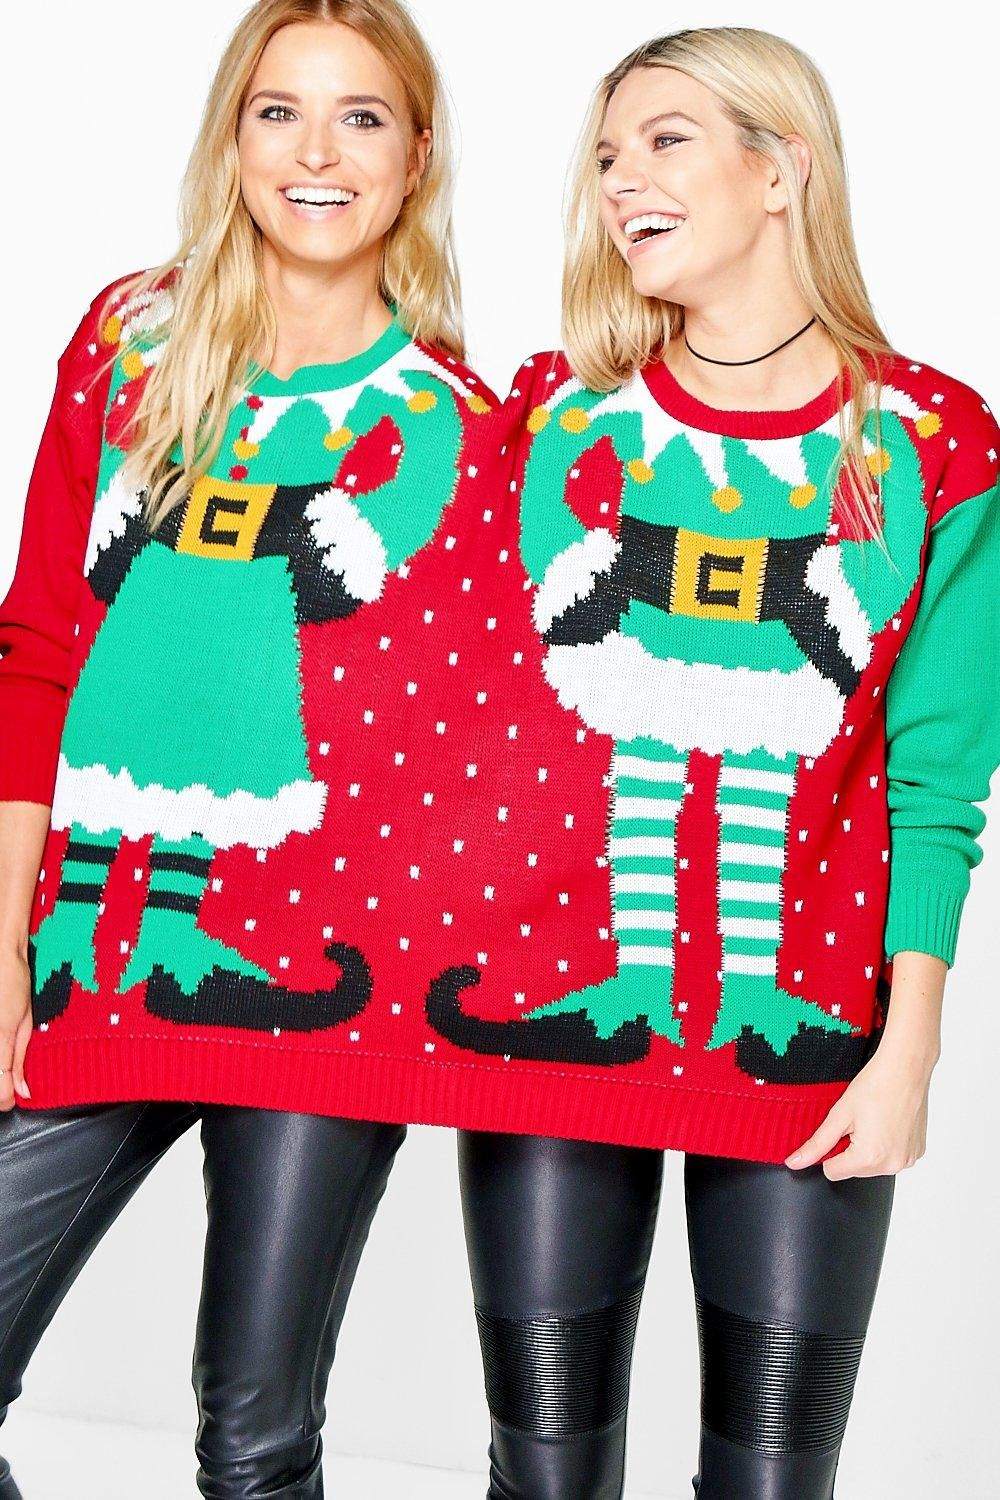 Mr & Mrs Elf Two Person Christmas Jumper Ladies